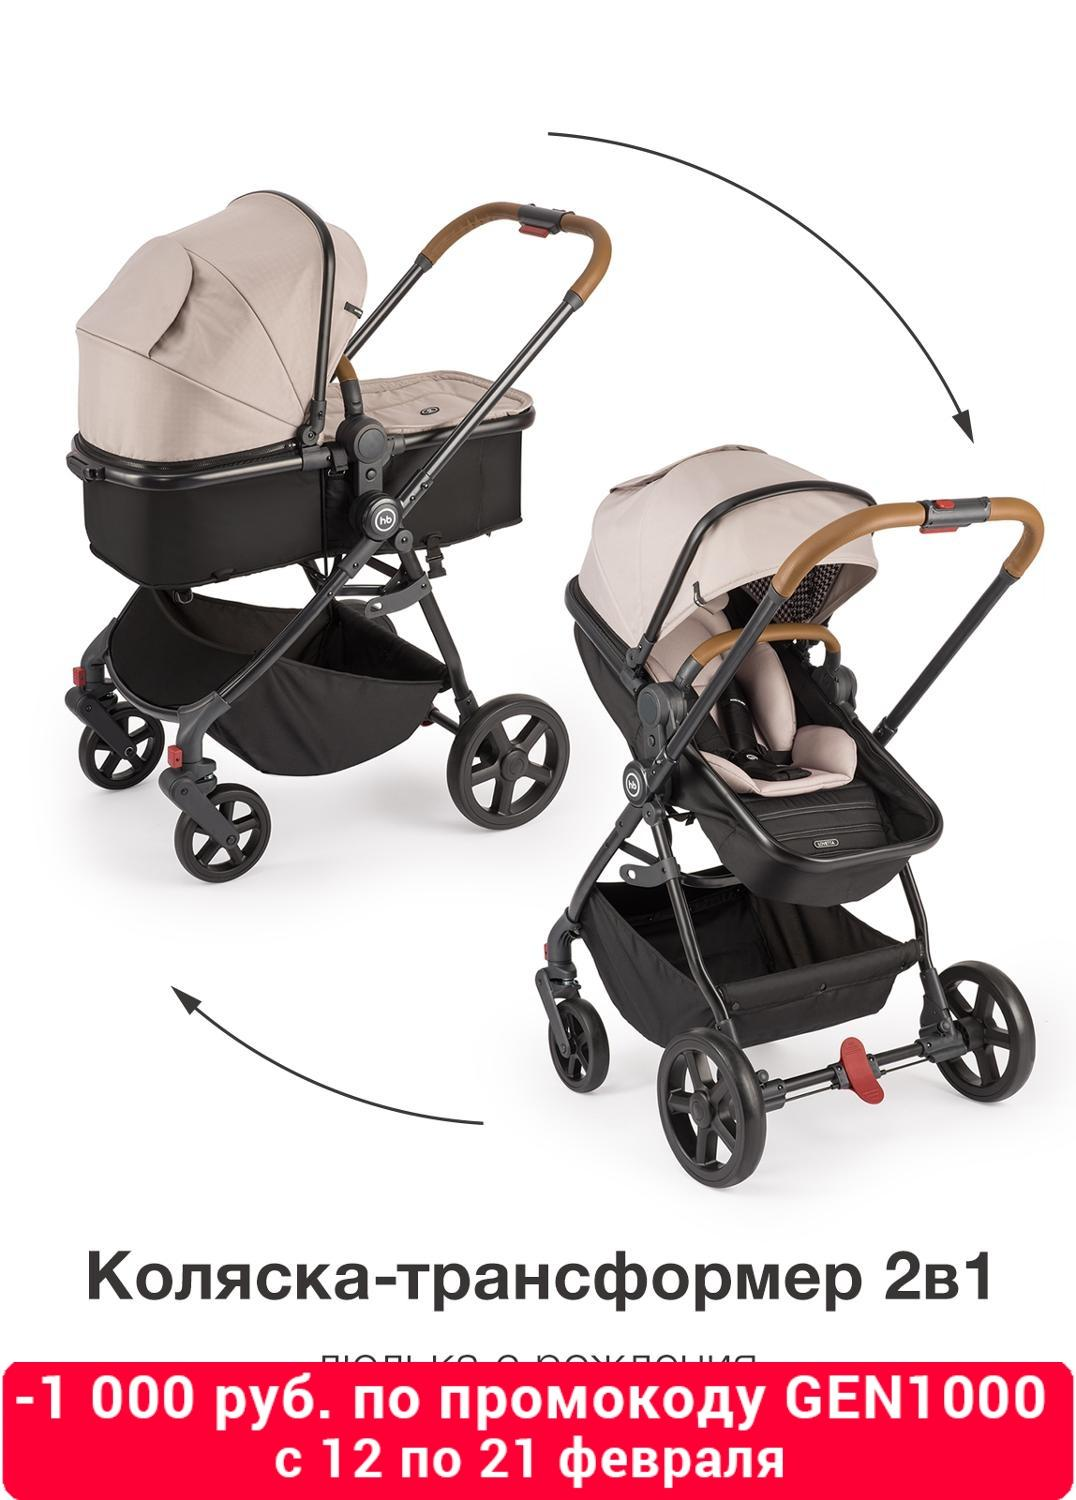 Four Wheels Stroller Happy Baby LOVETTA Mother And Kids Stroll Baby For Boys And Girls Children Strollers Beige Camel